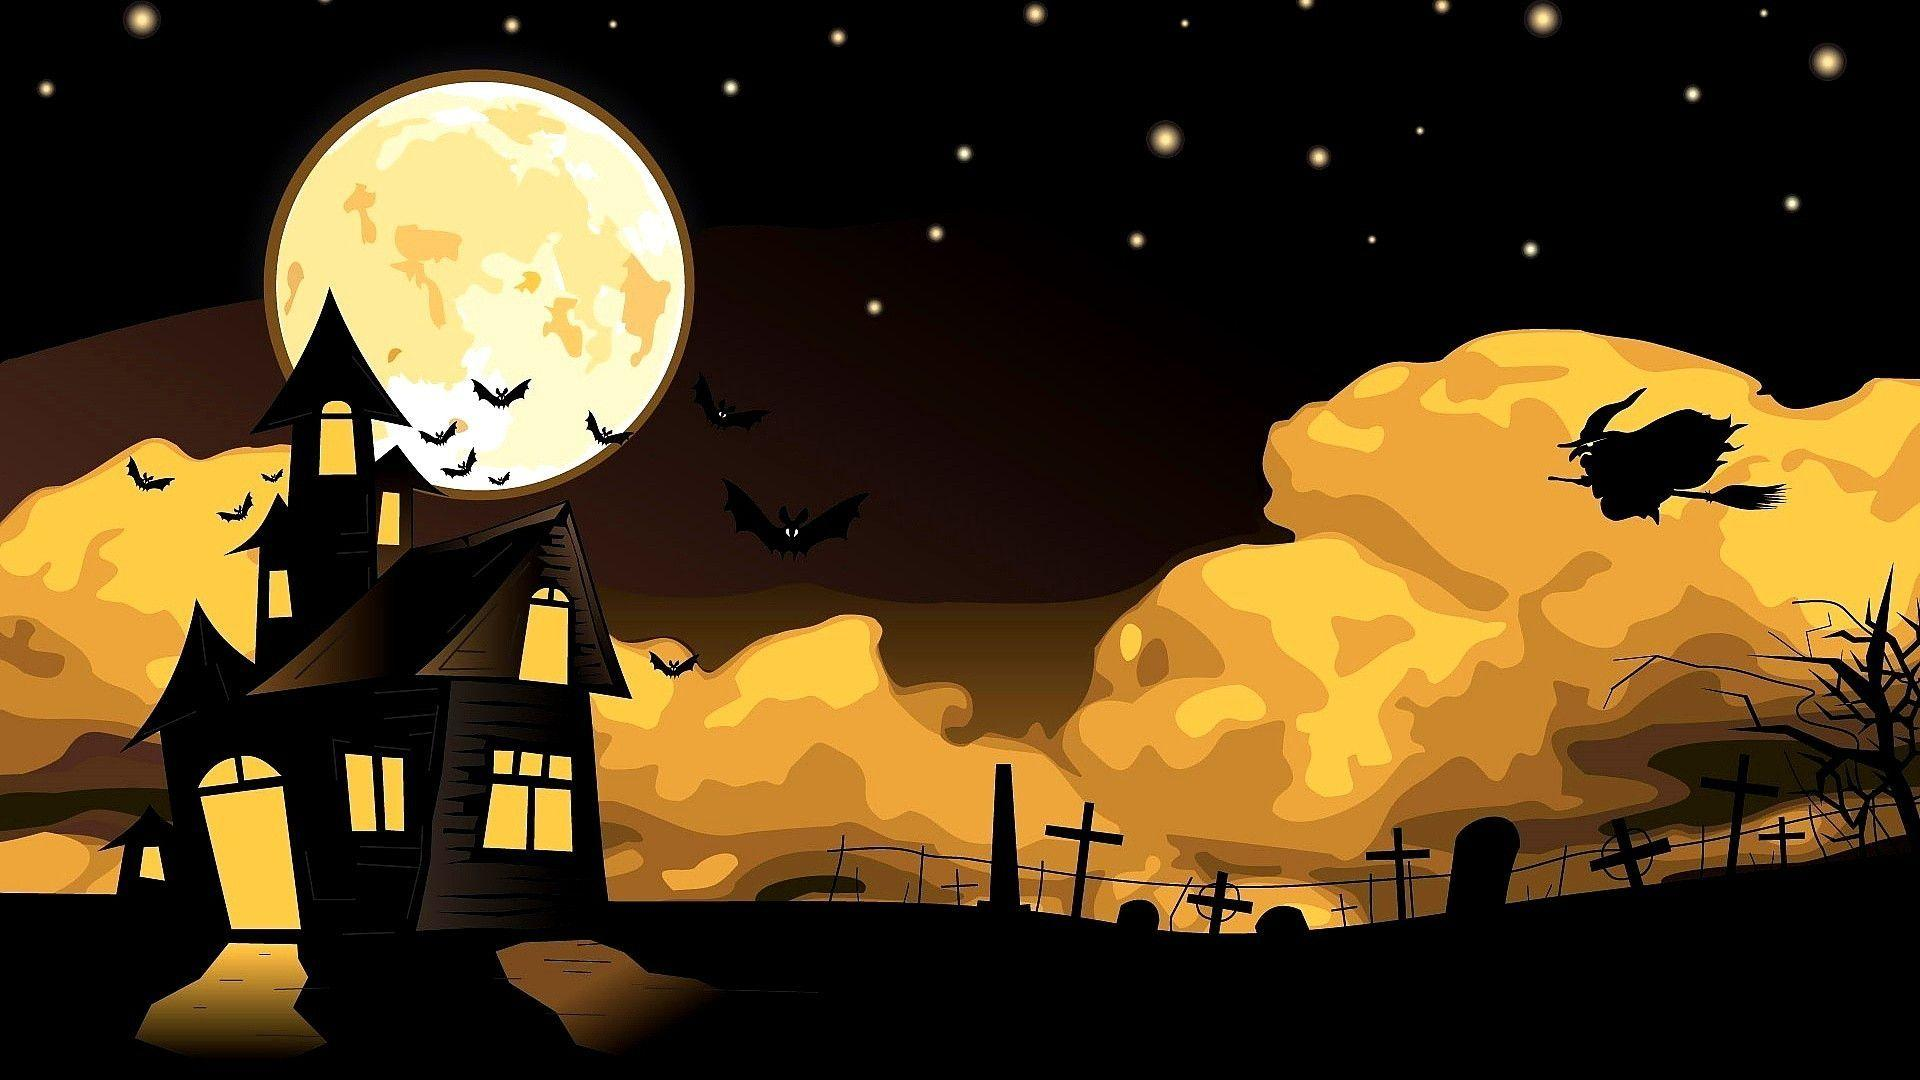 wallpapers clubs free halloween - photo #35